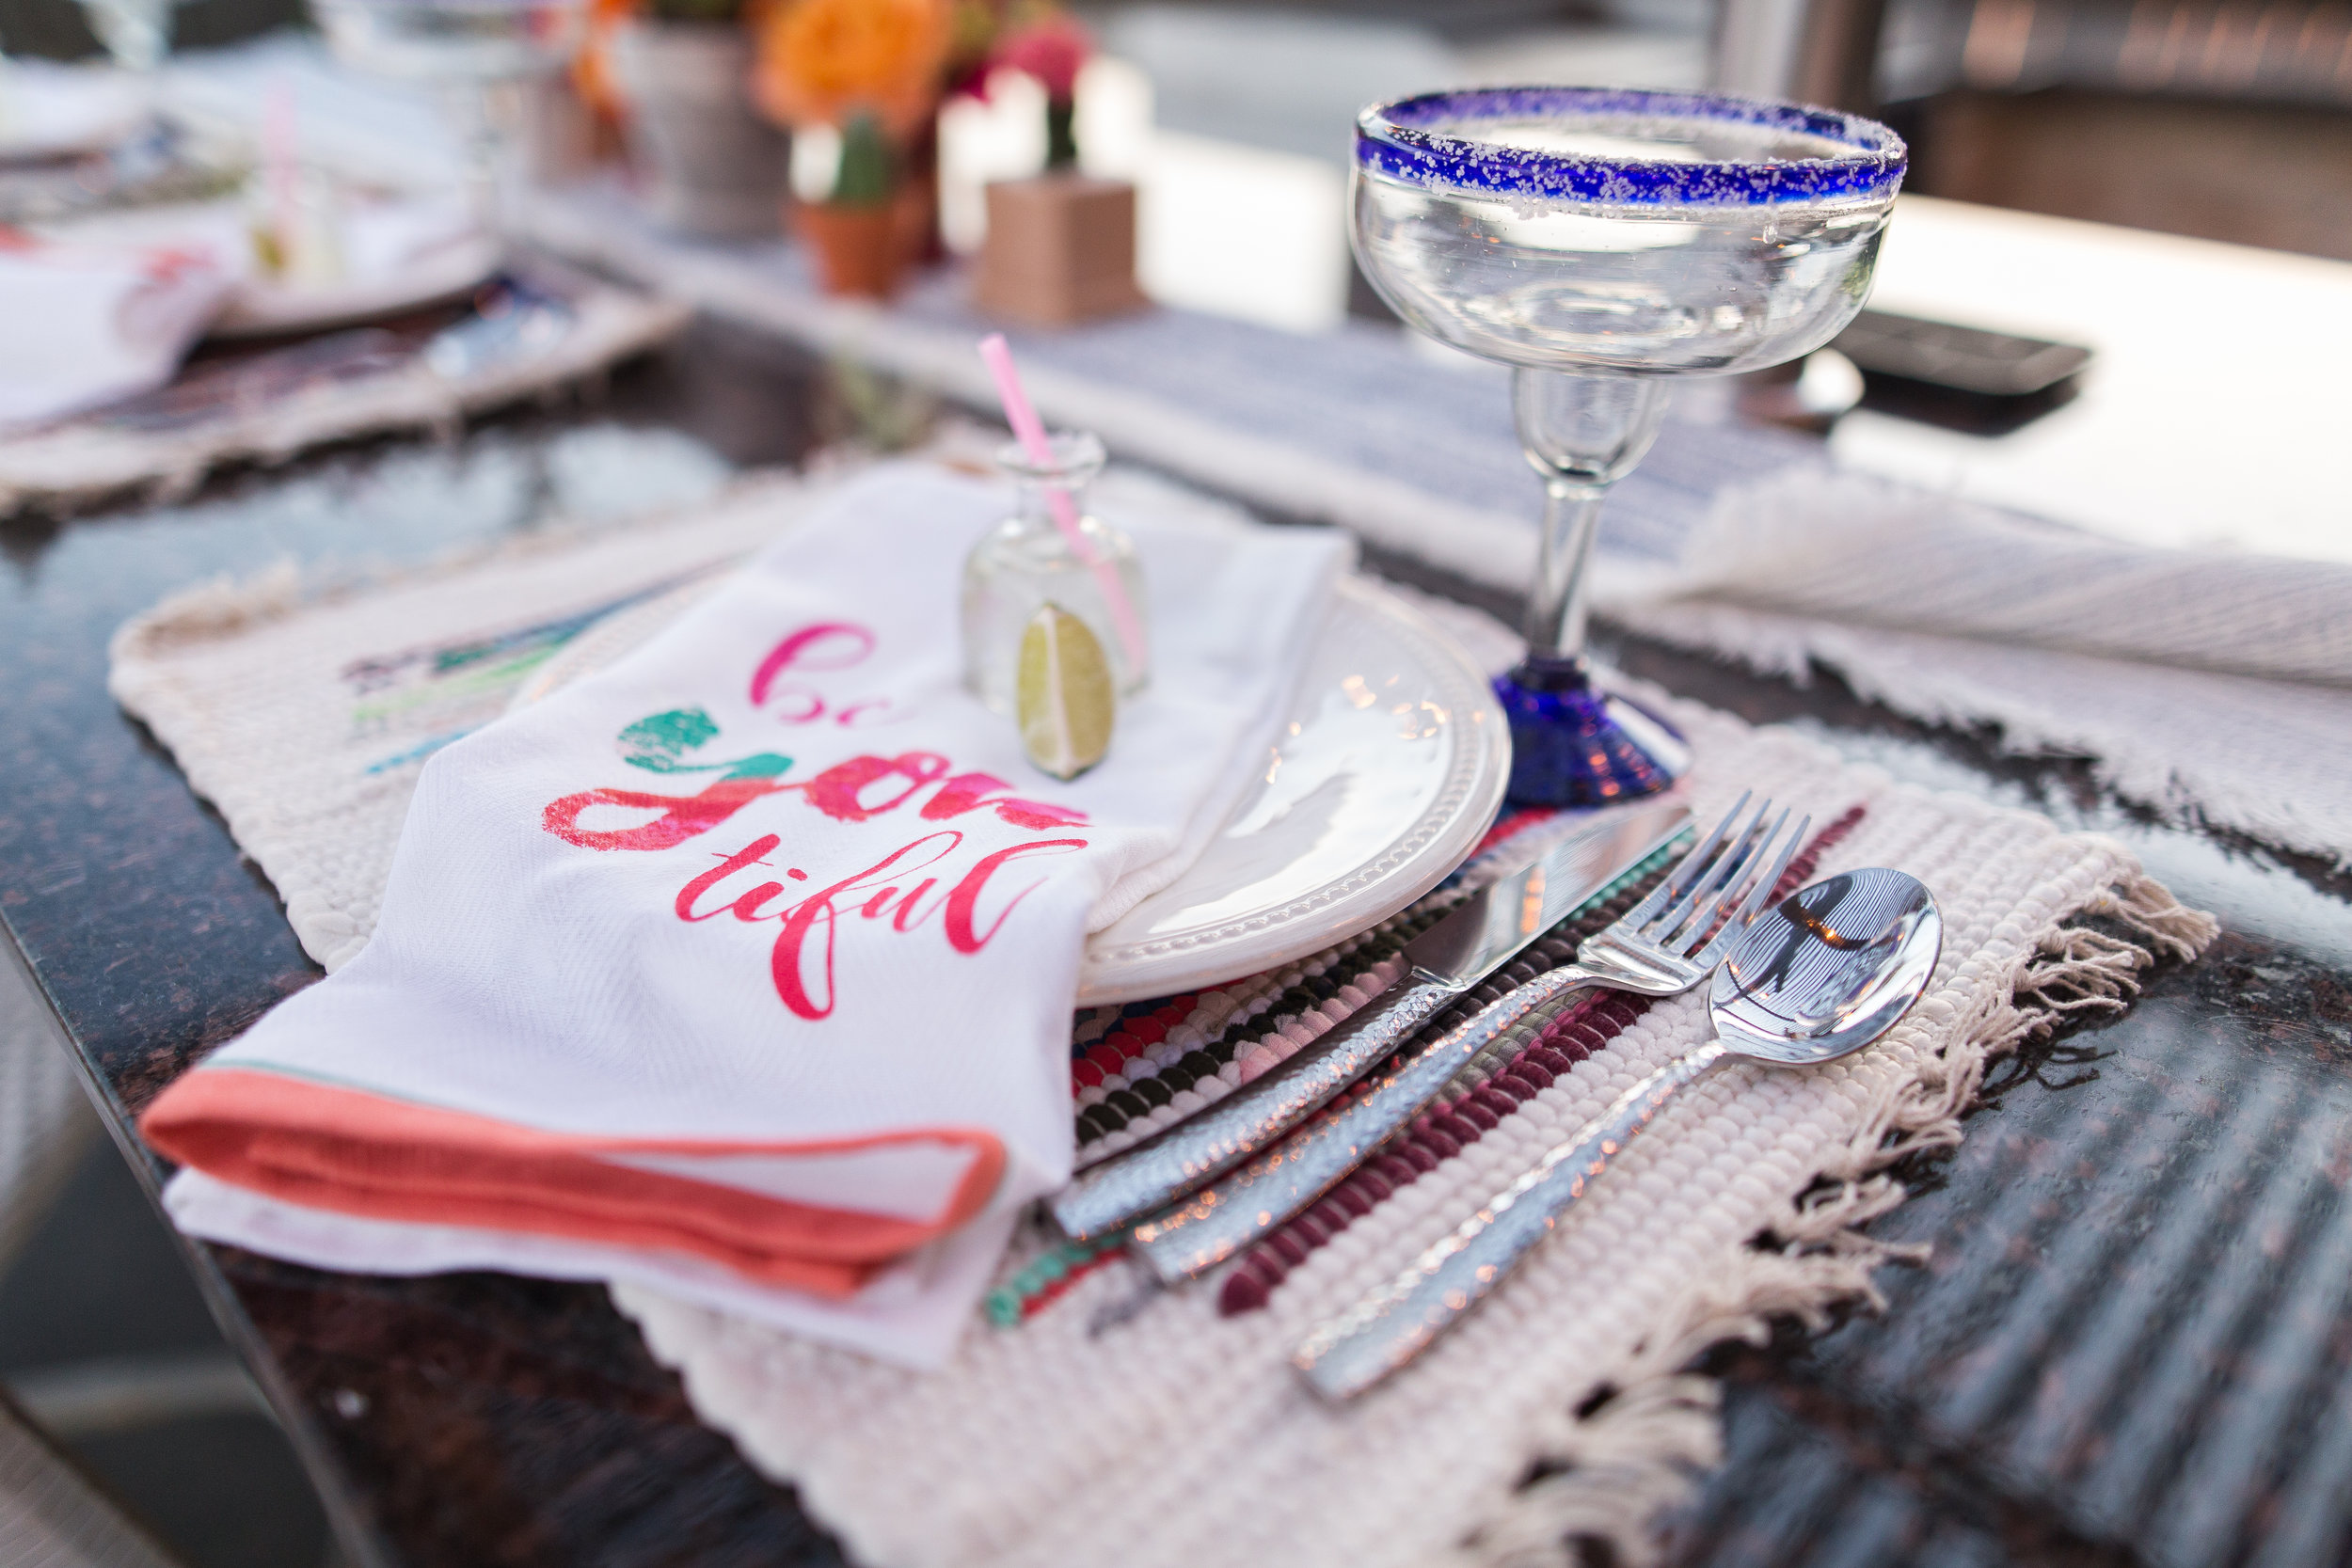 fiesta-place-setting-with-mini-patron-bottle